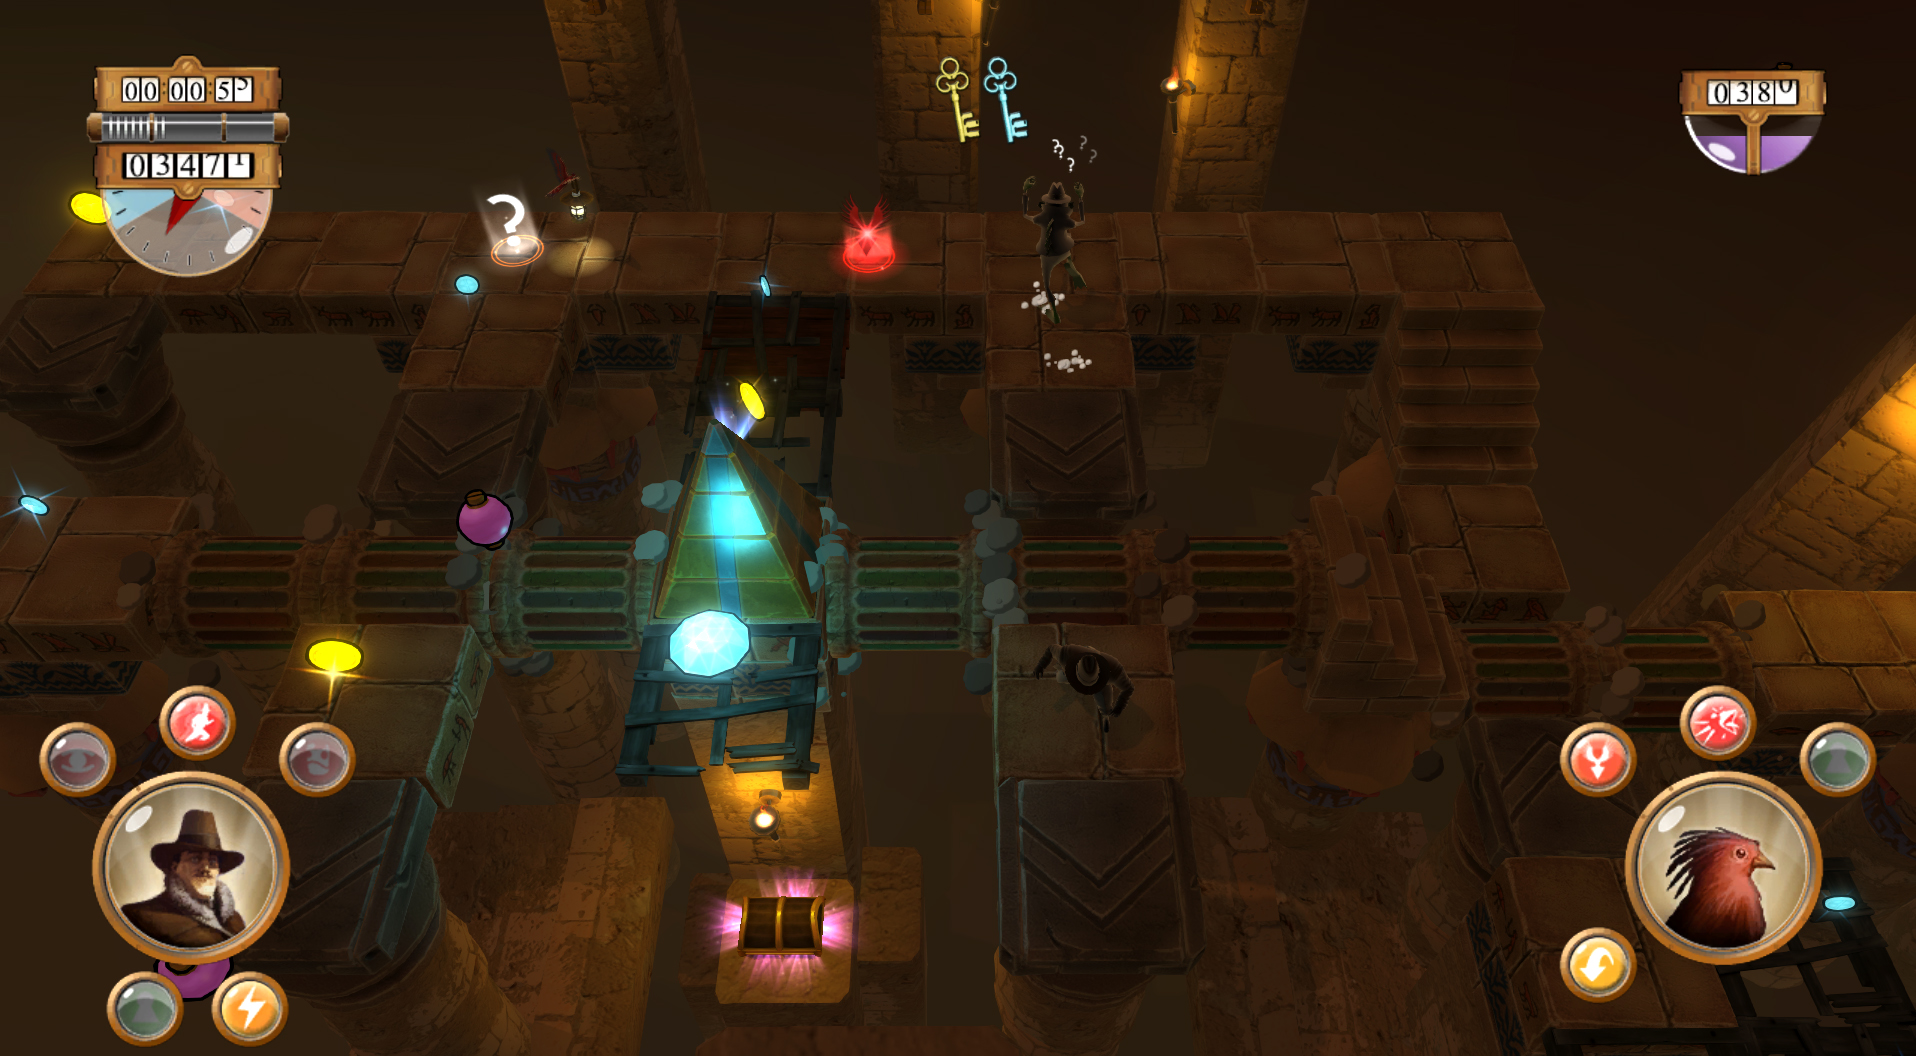 Hamilton's Great Adventure Screenshot 7.jpg